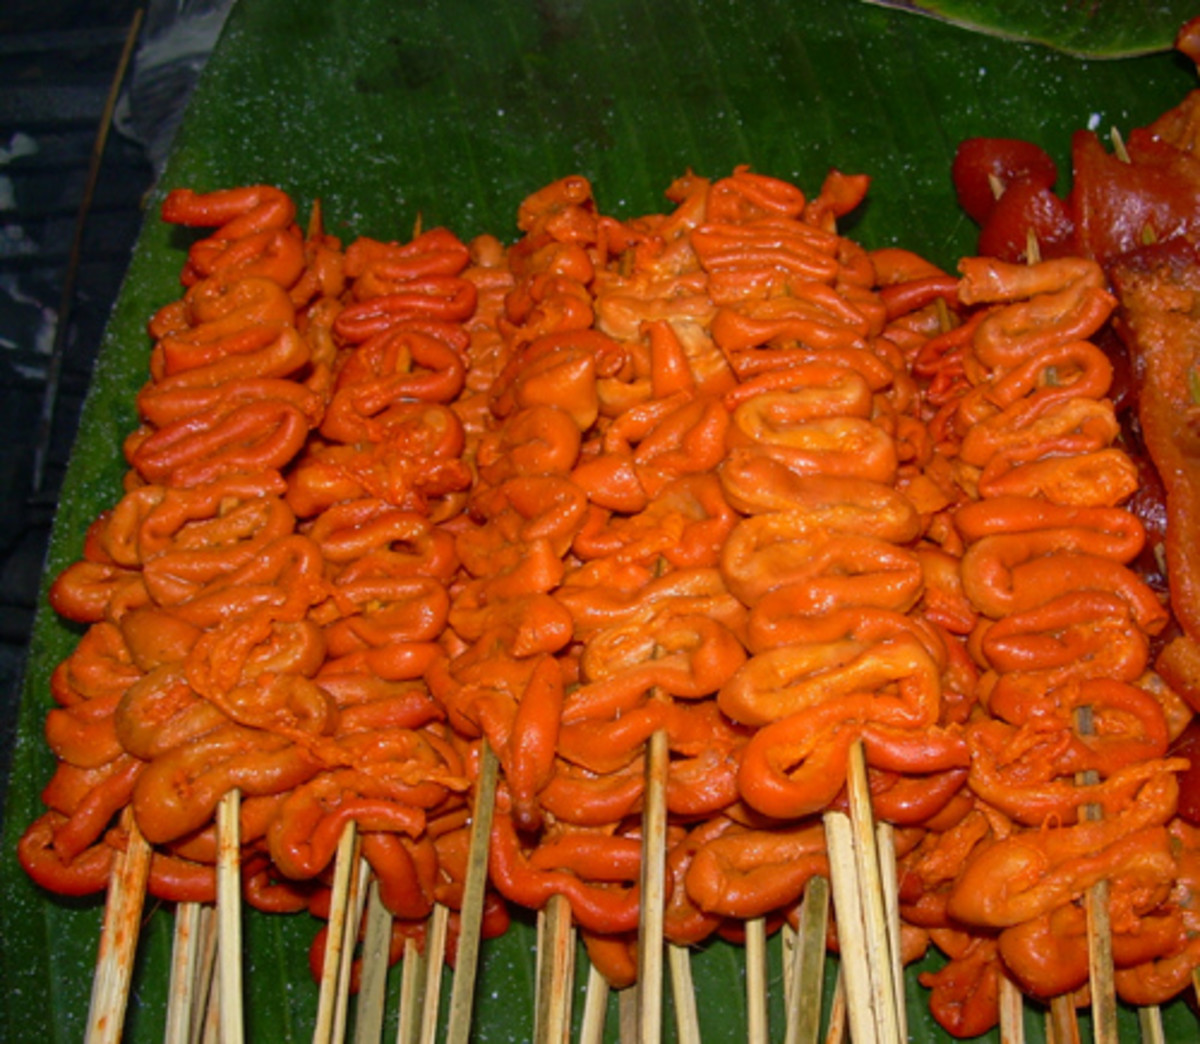 Isaw.